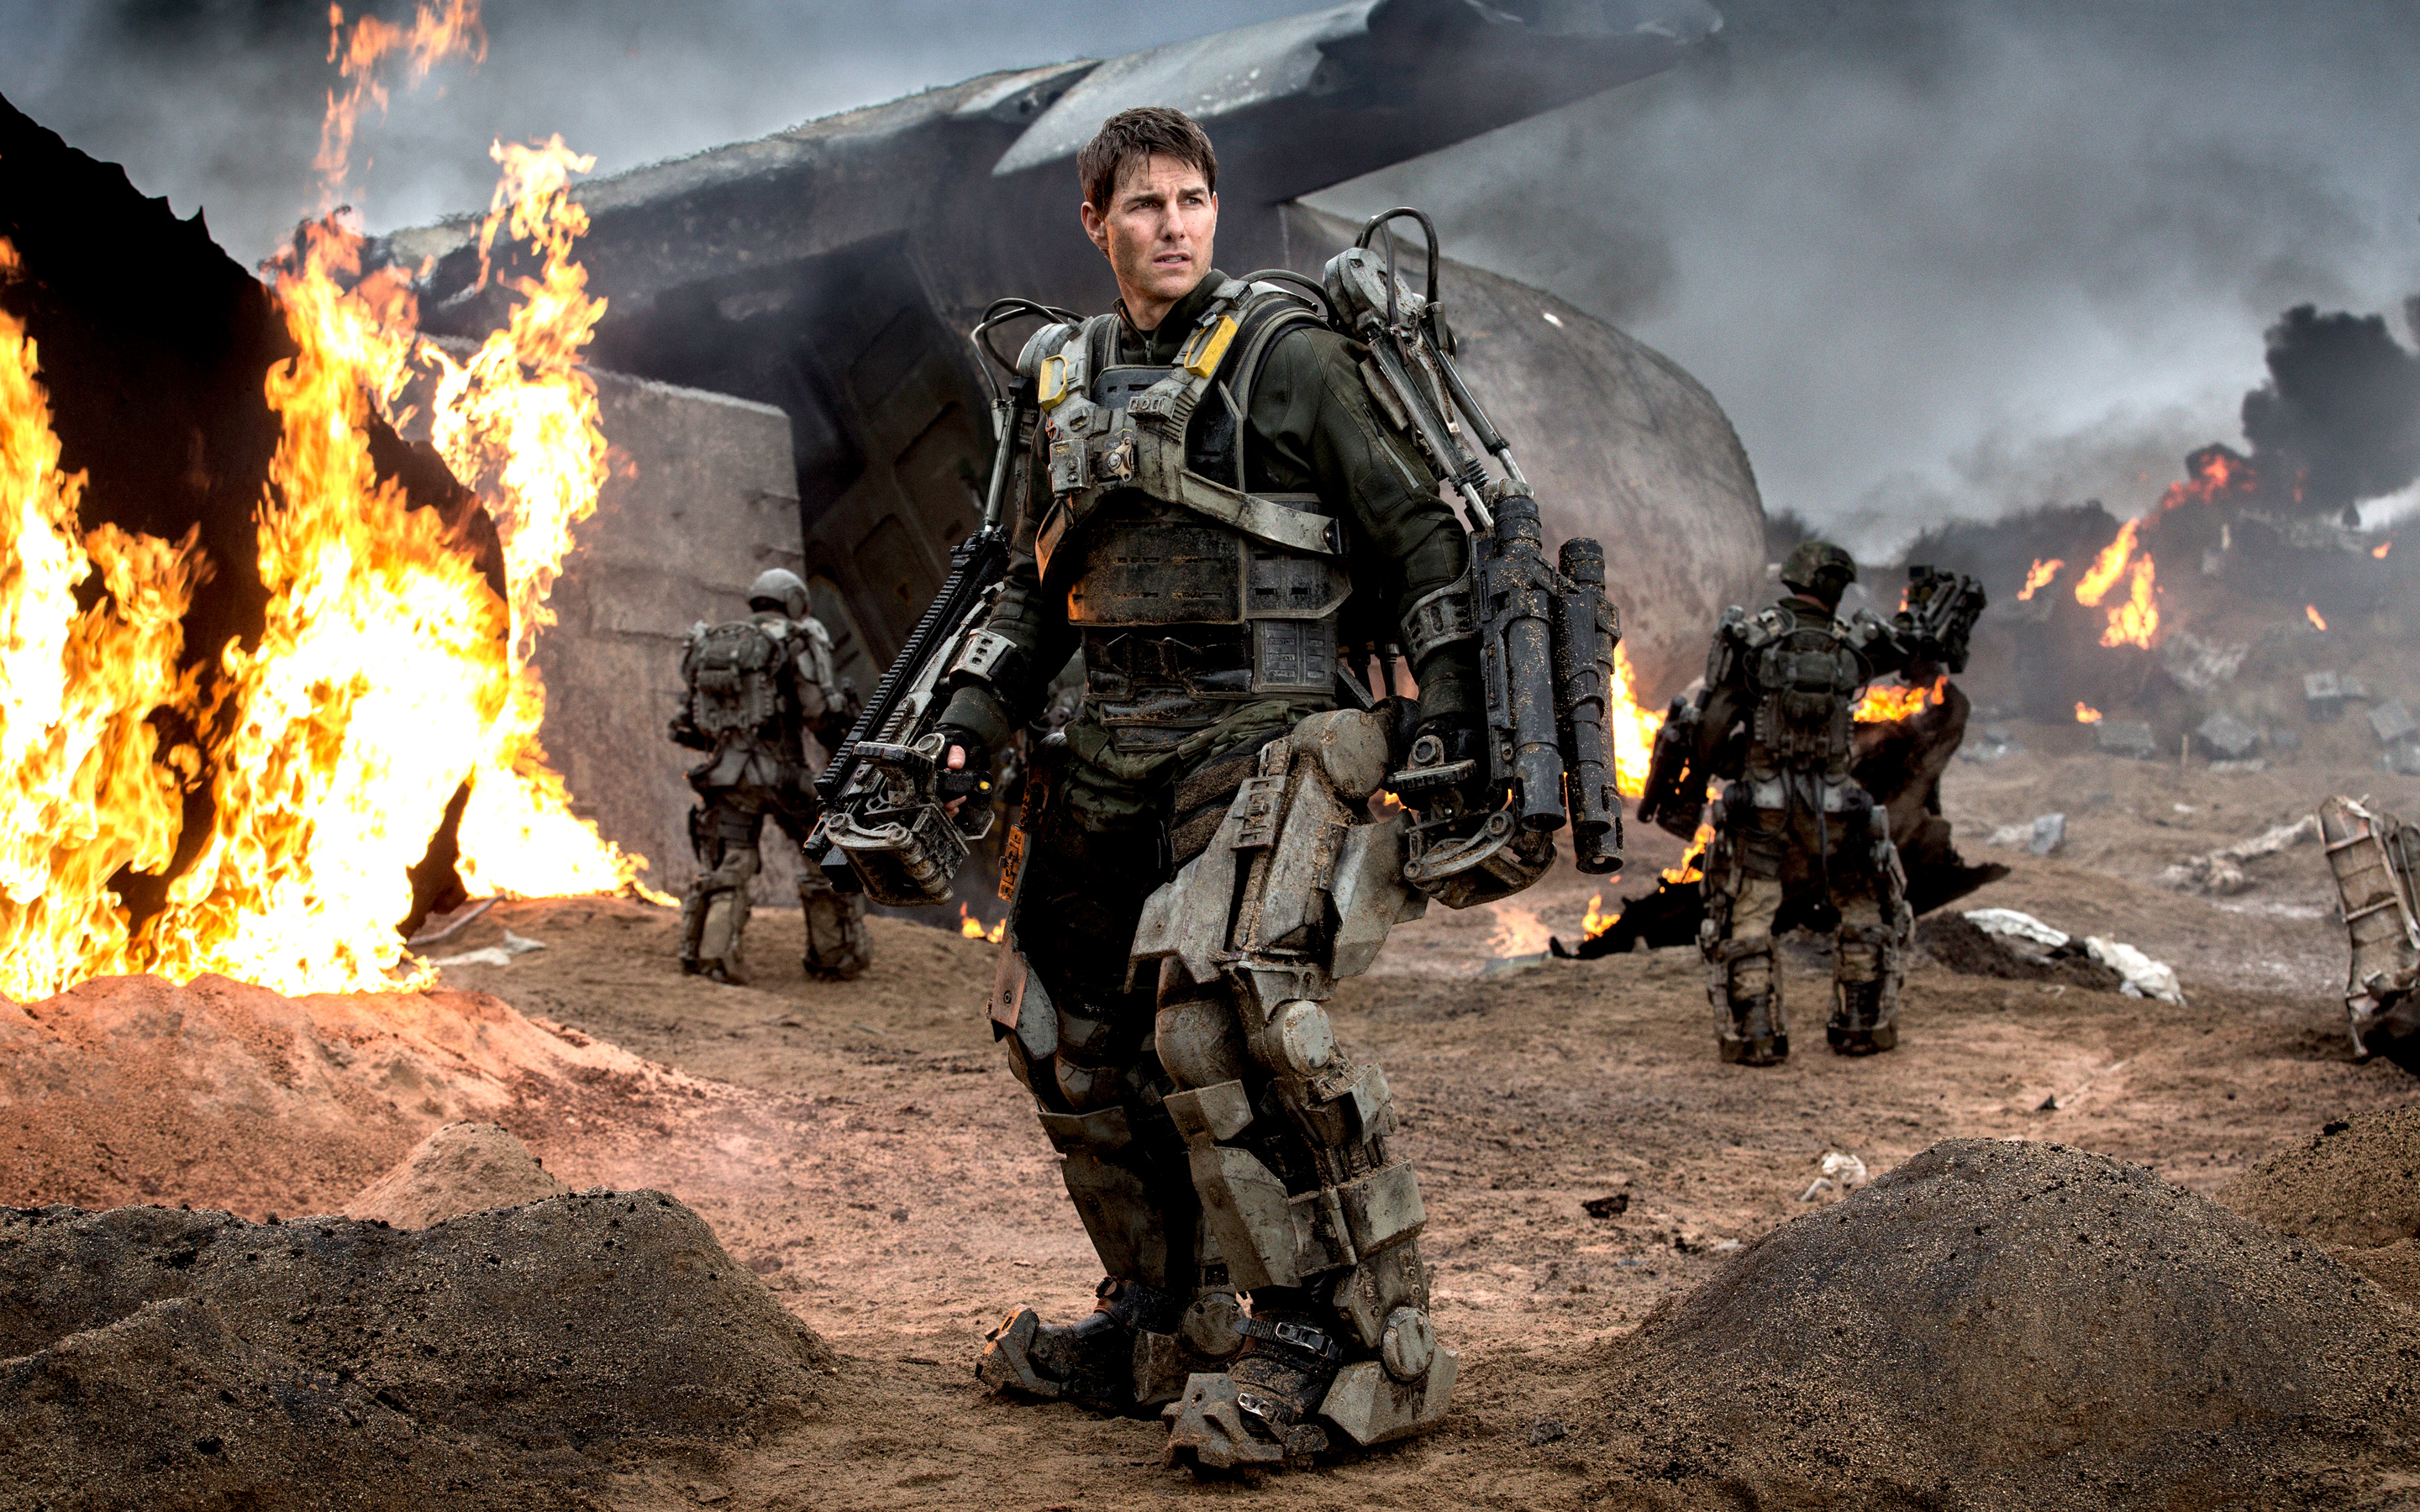 Edge of Tomorrow Tom Cruise 1325.8 Kb